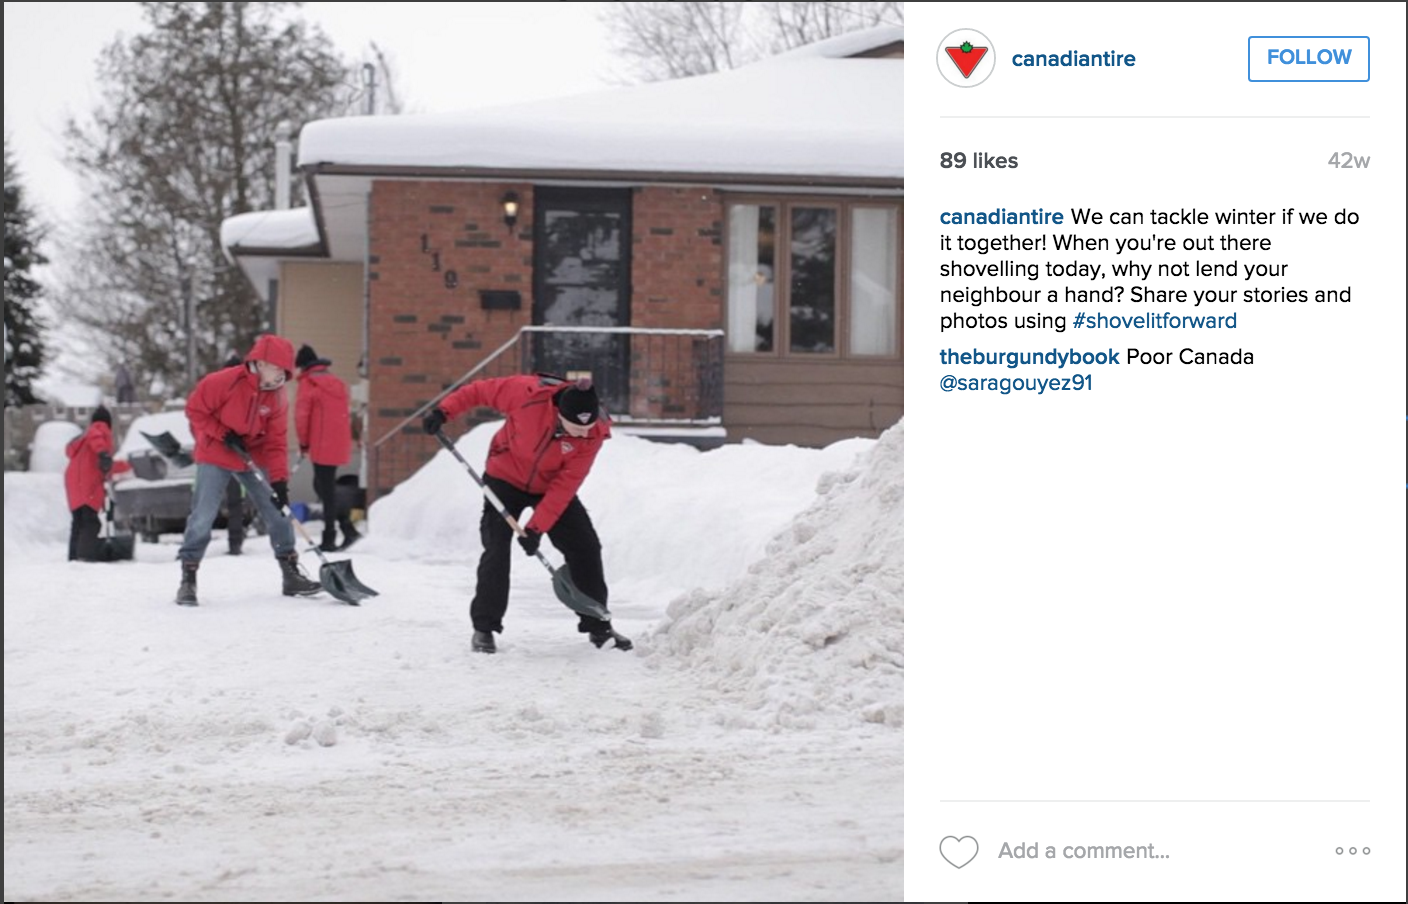 Shovelitforward canadian tire